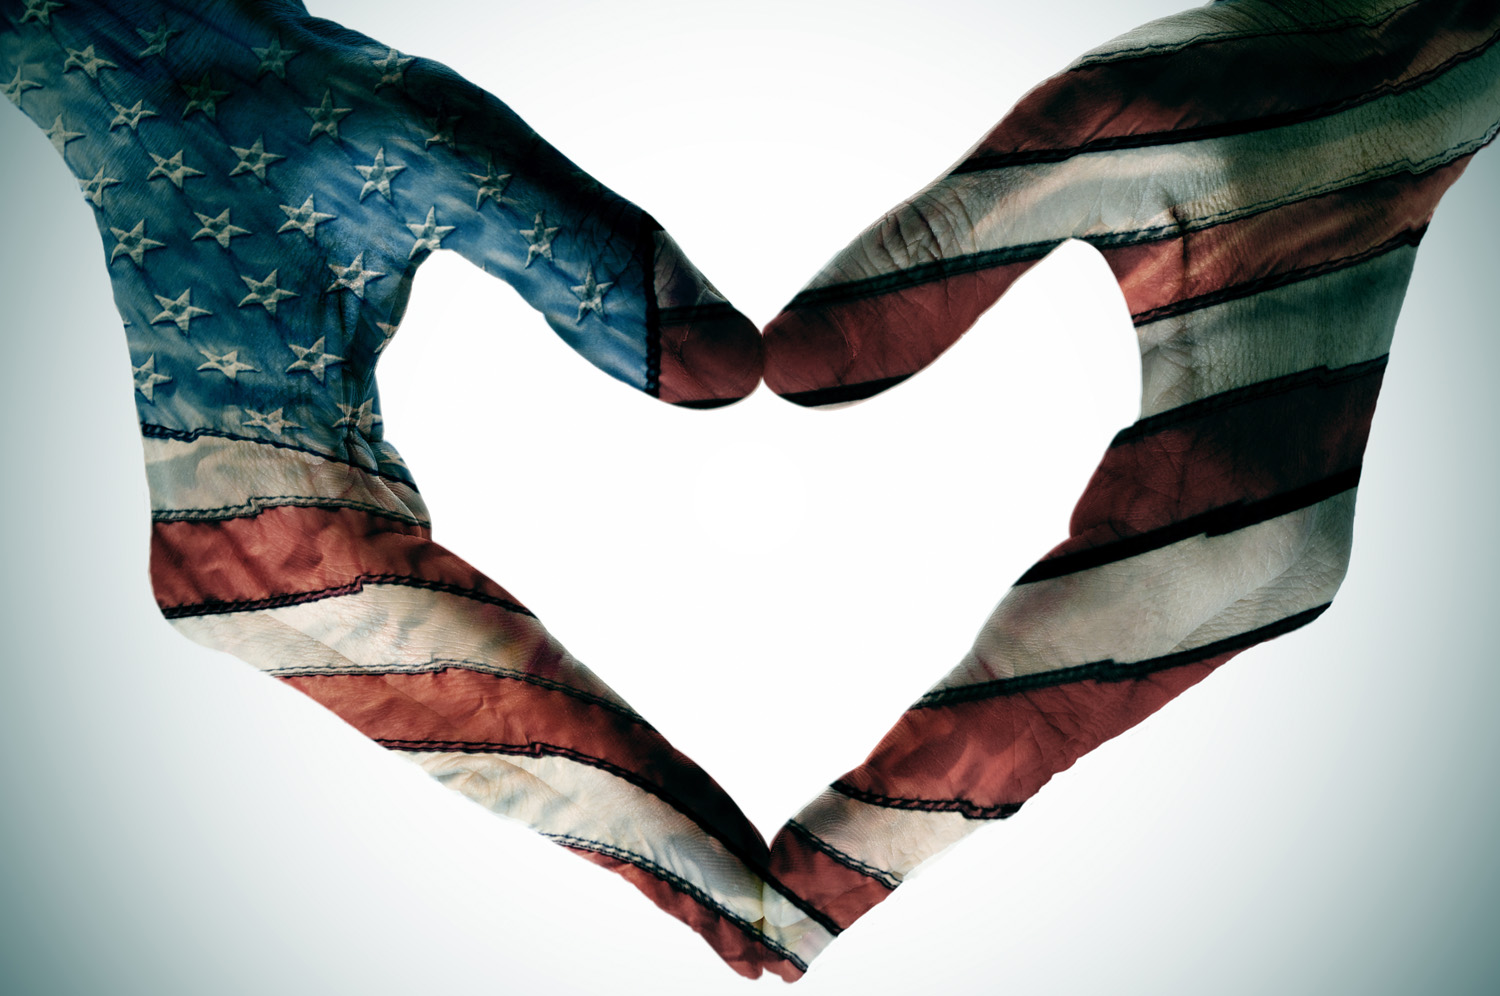 Staten Island Car Donation for Veterans | Troops Relief Fund